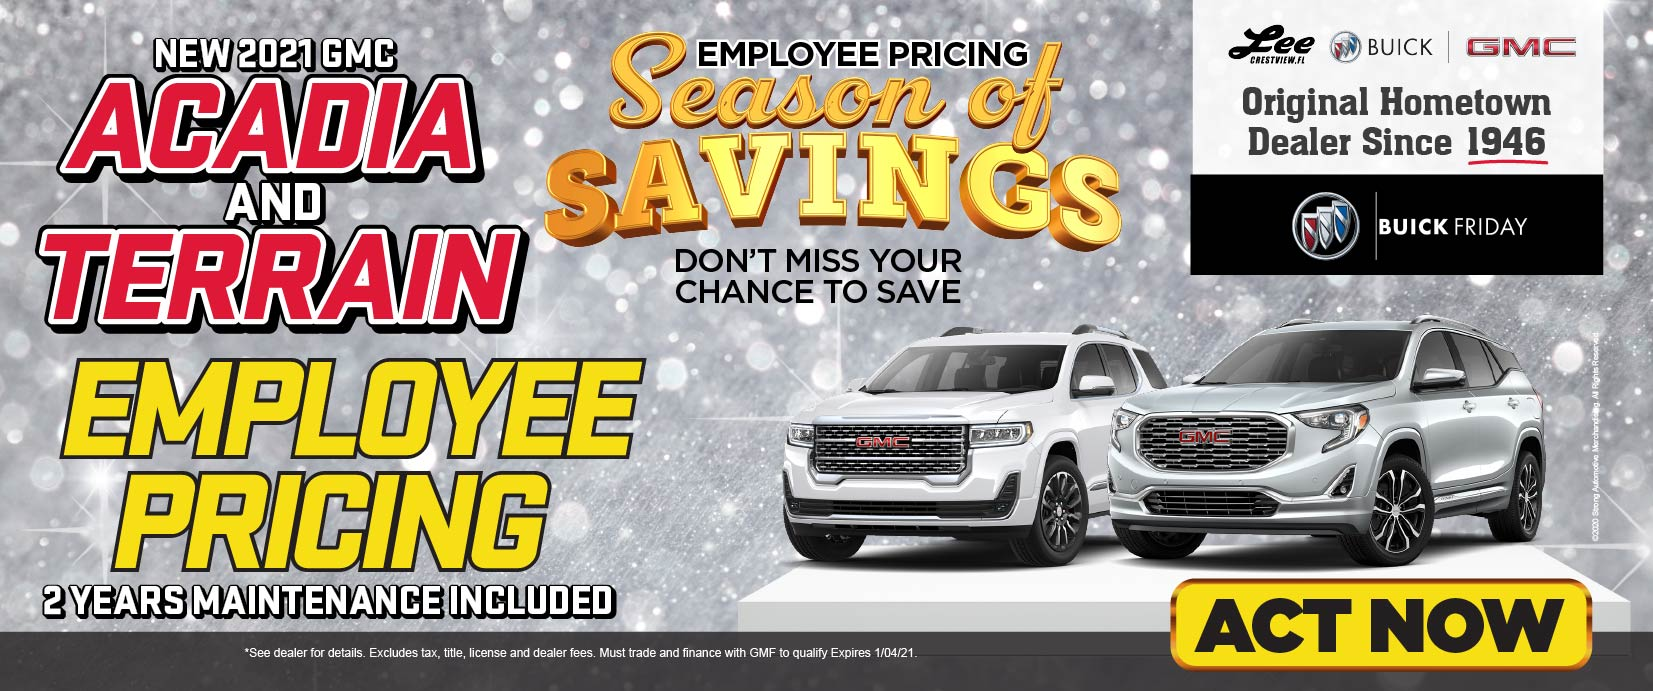 Acadia and Terrain Employee Pricing